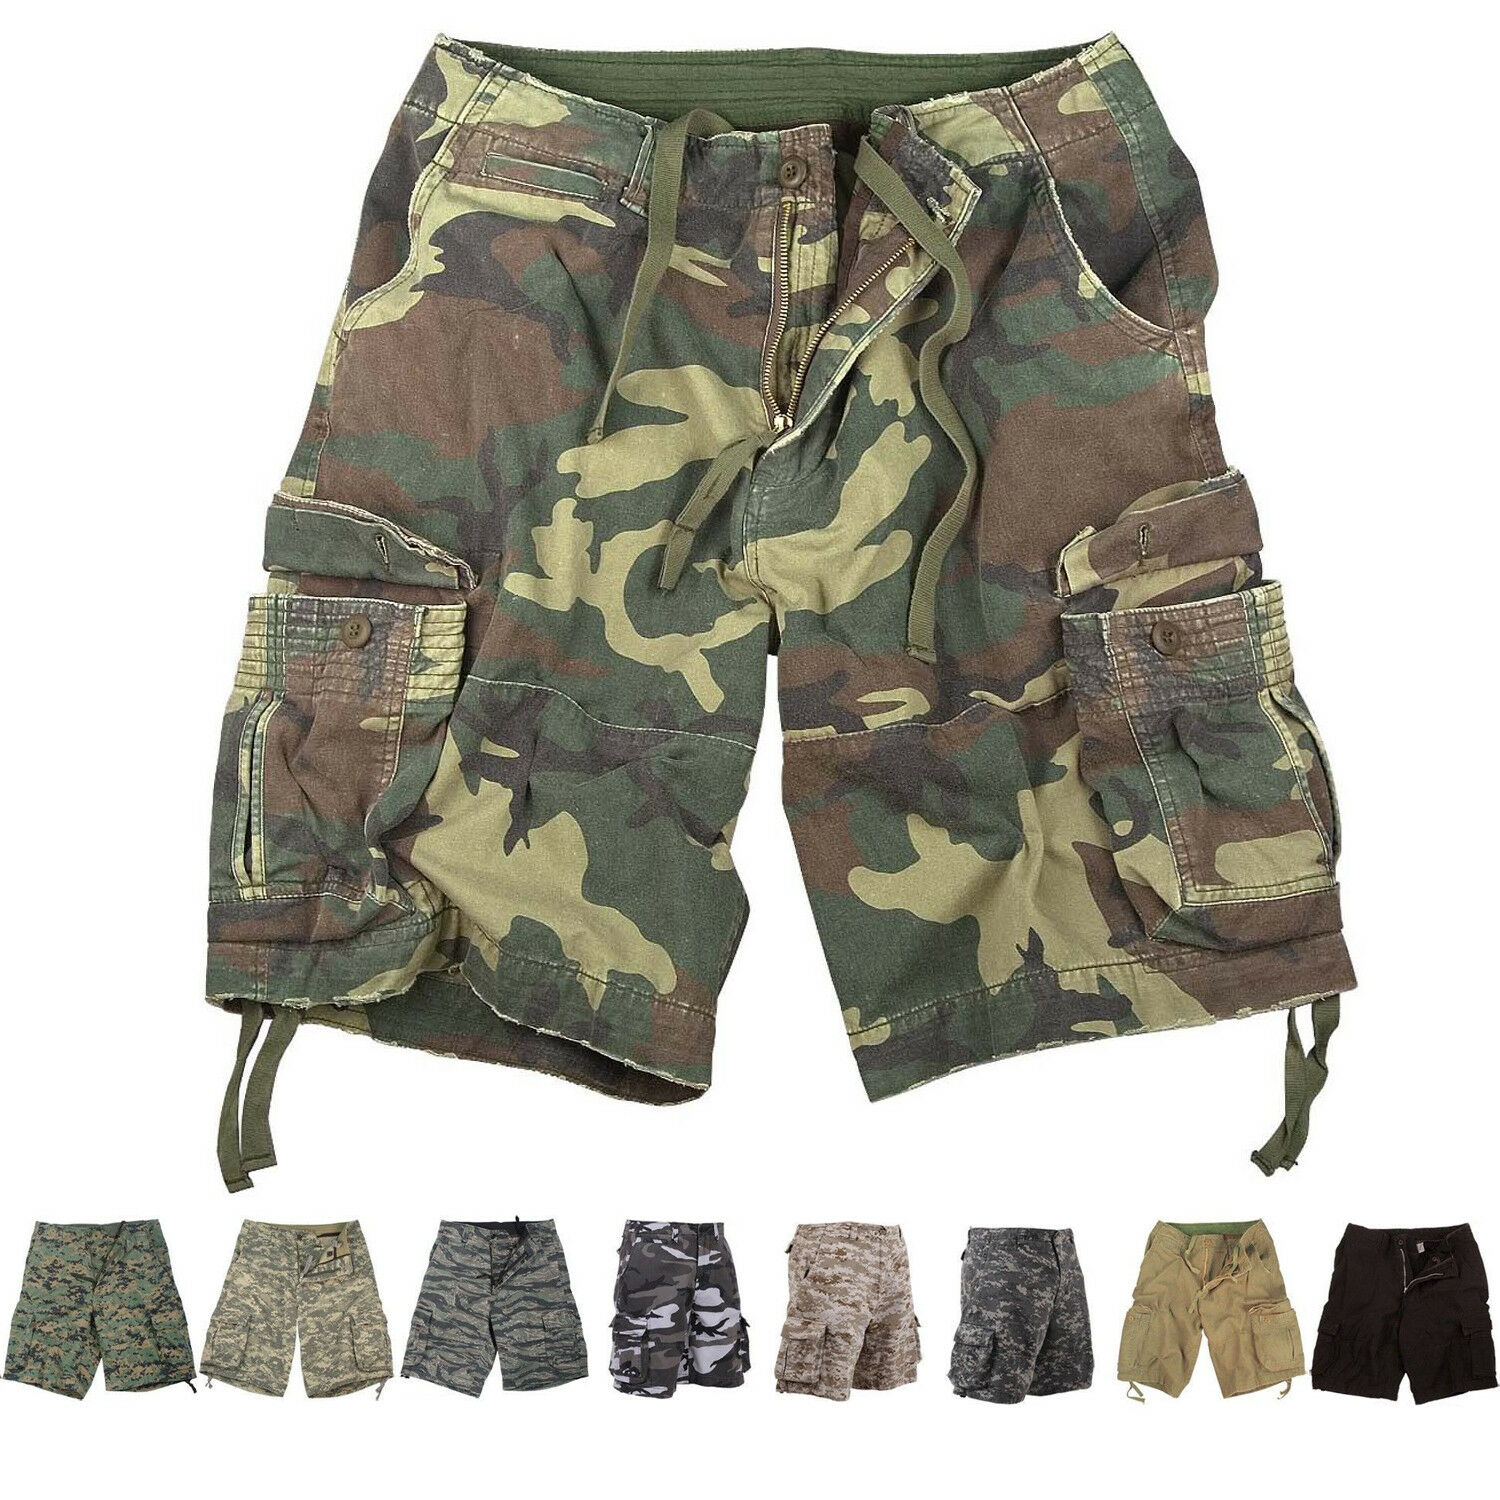 shorts cargo olive drab green vintage style washed look mens rothco 2160